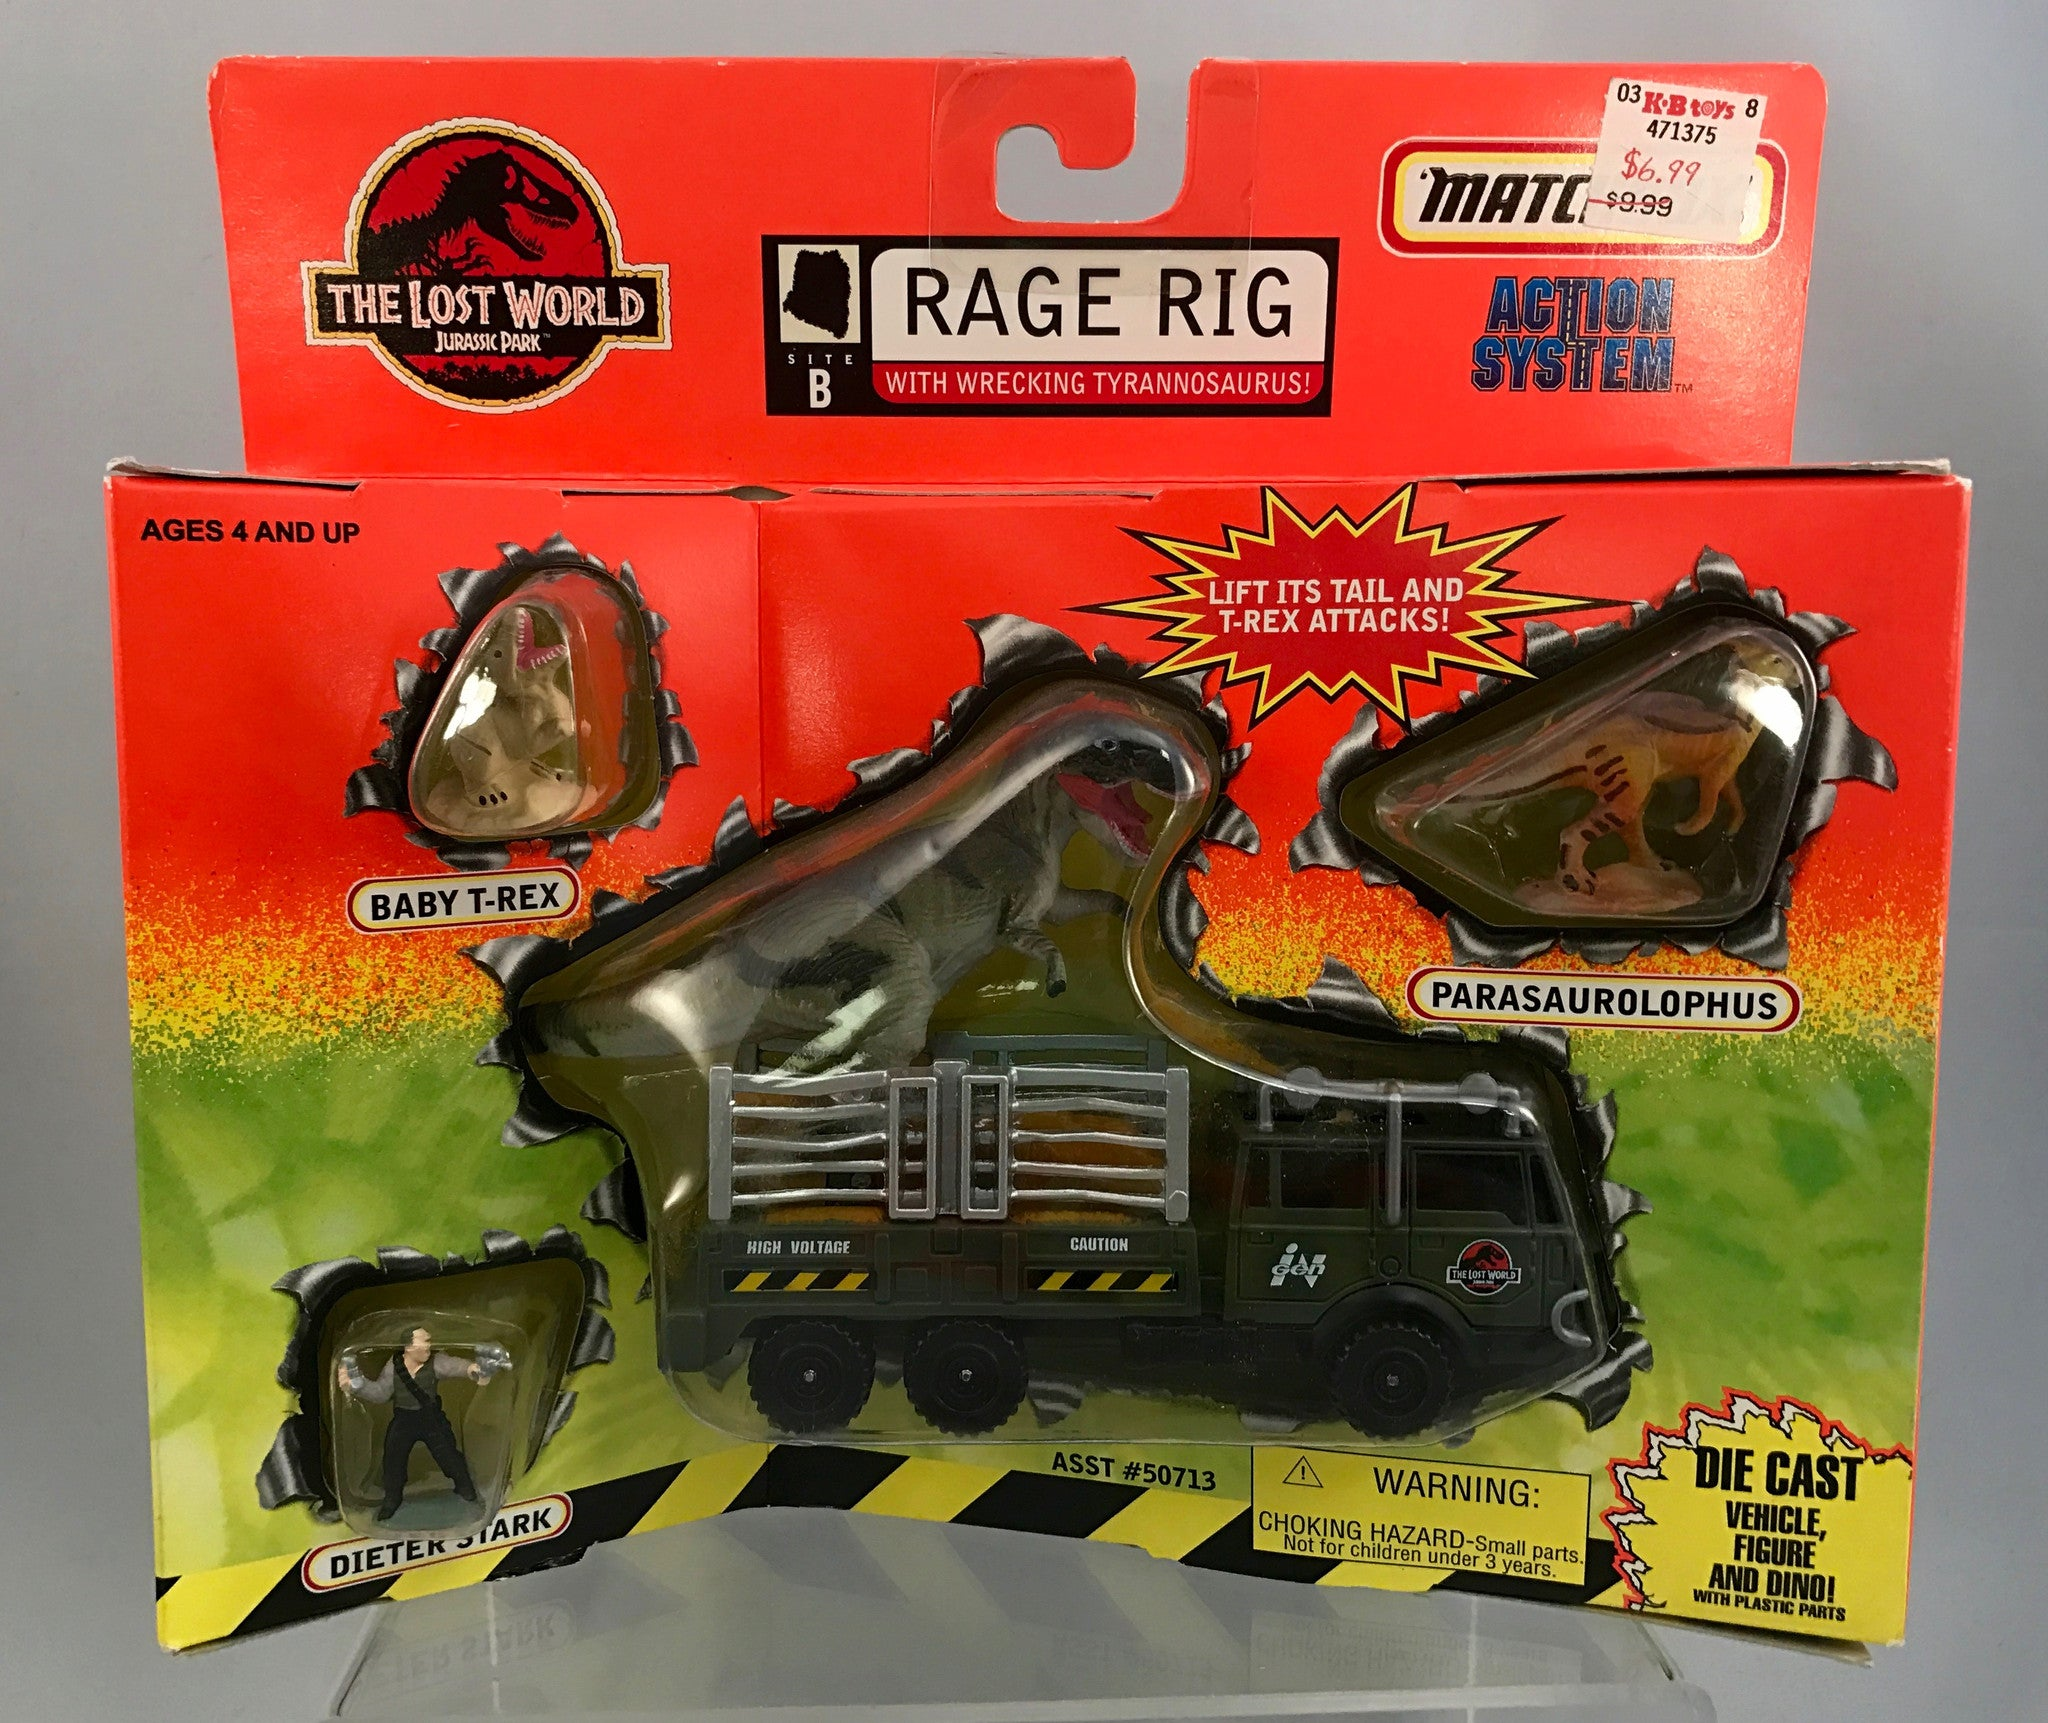 Vintage Jurassic Park The Lost World Matchbox Rage Rig w/ Wrecking Tyrannosaurus Die Cast